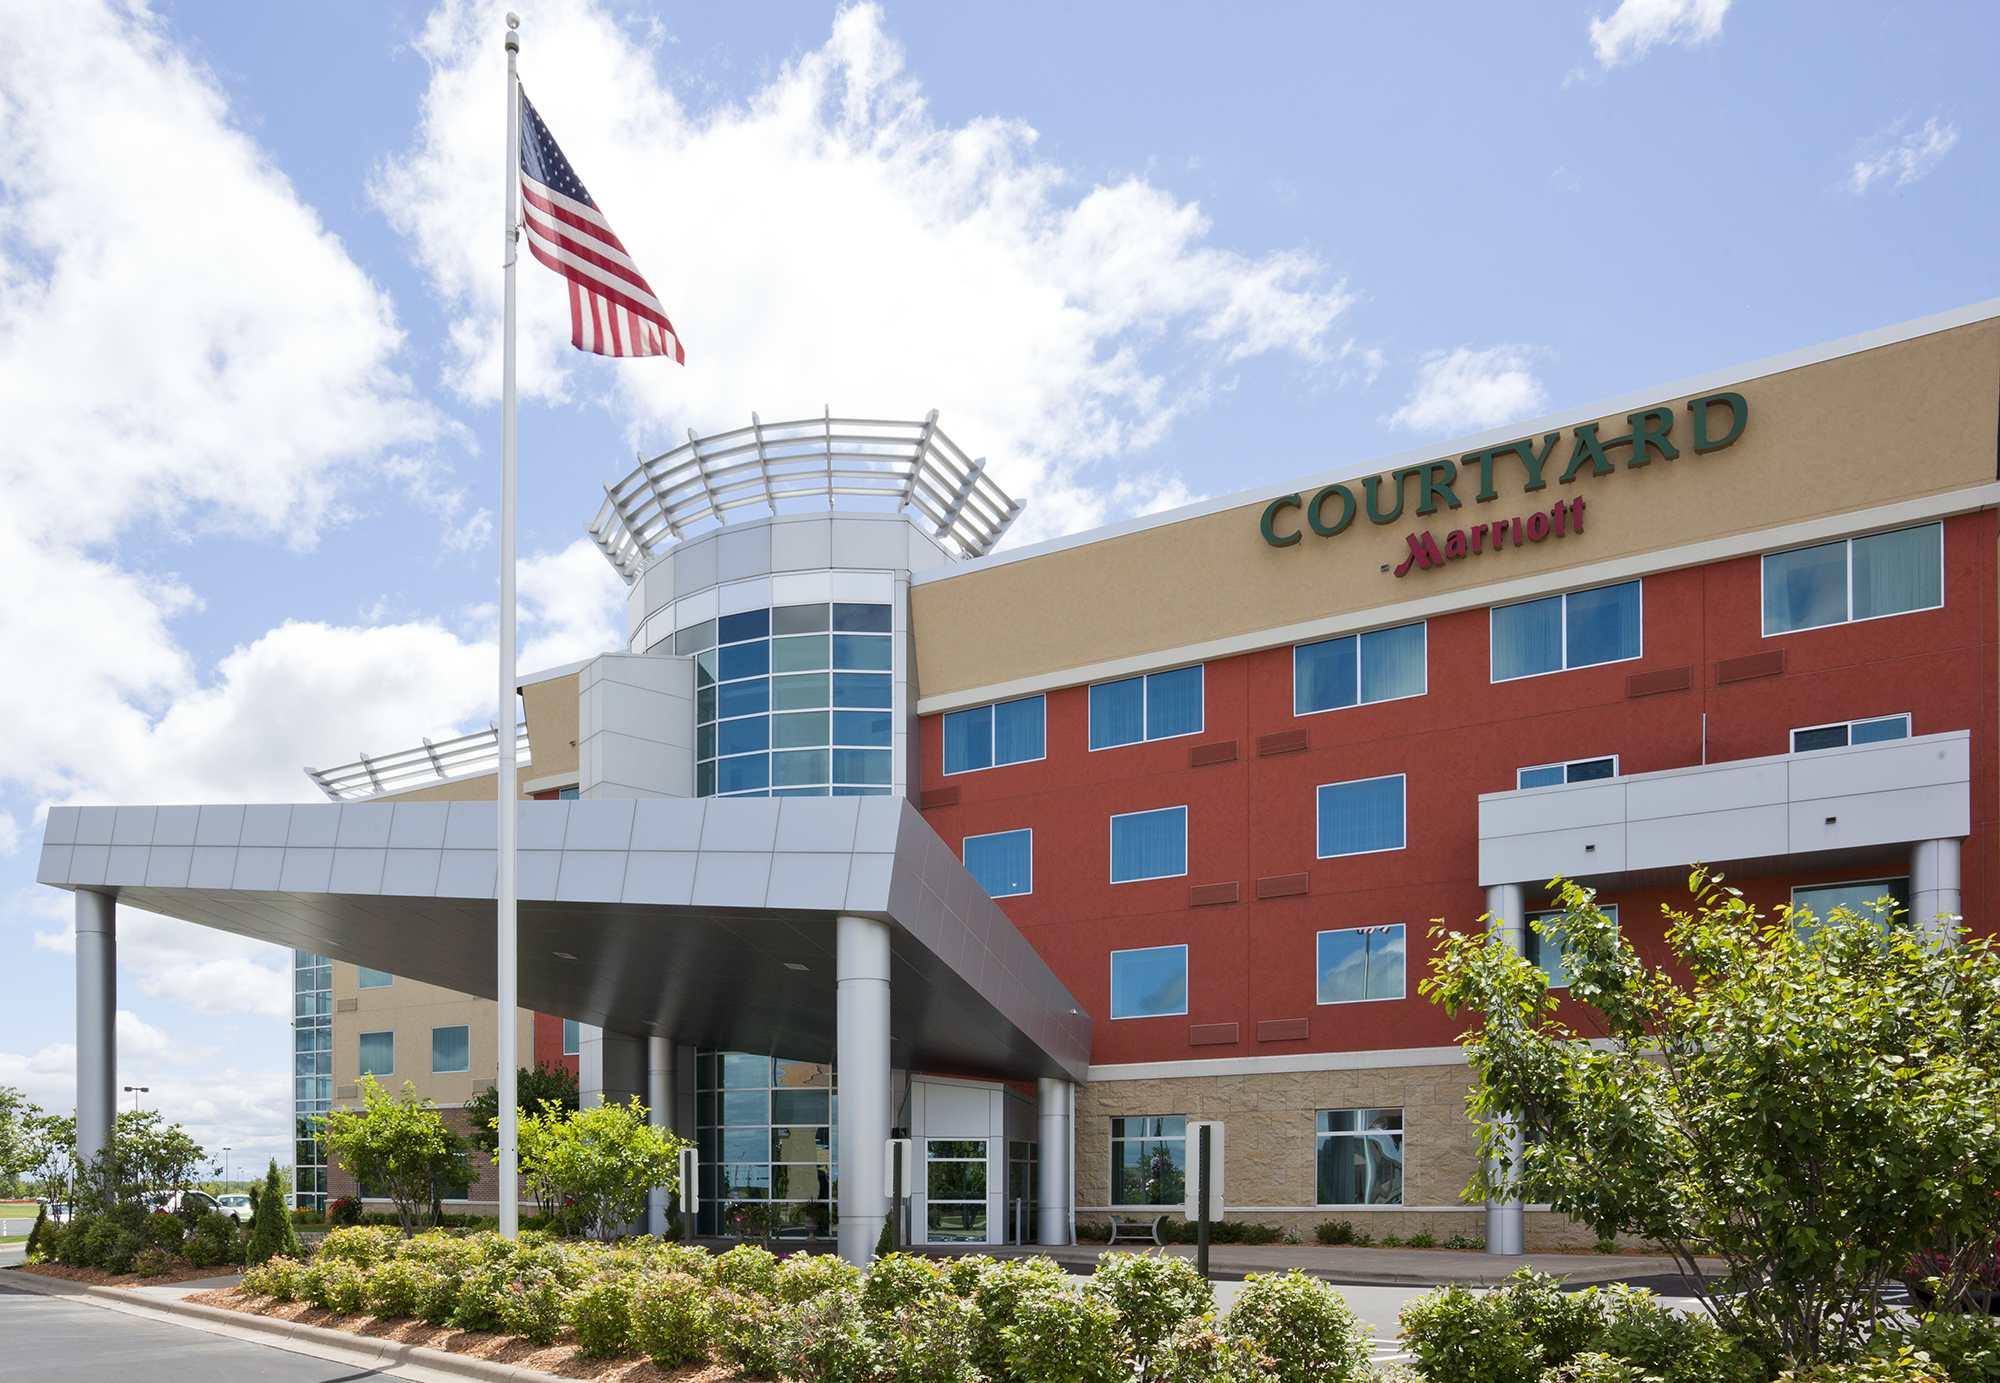 Outside view of a Courtyard by Marriott